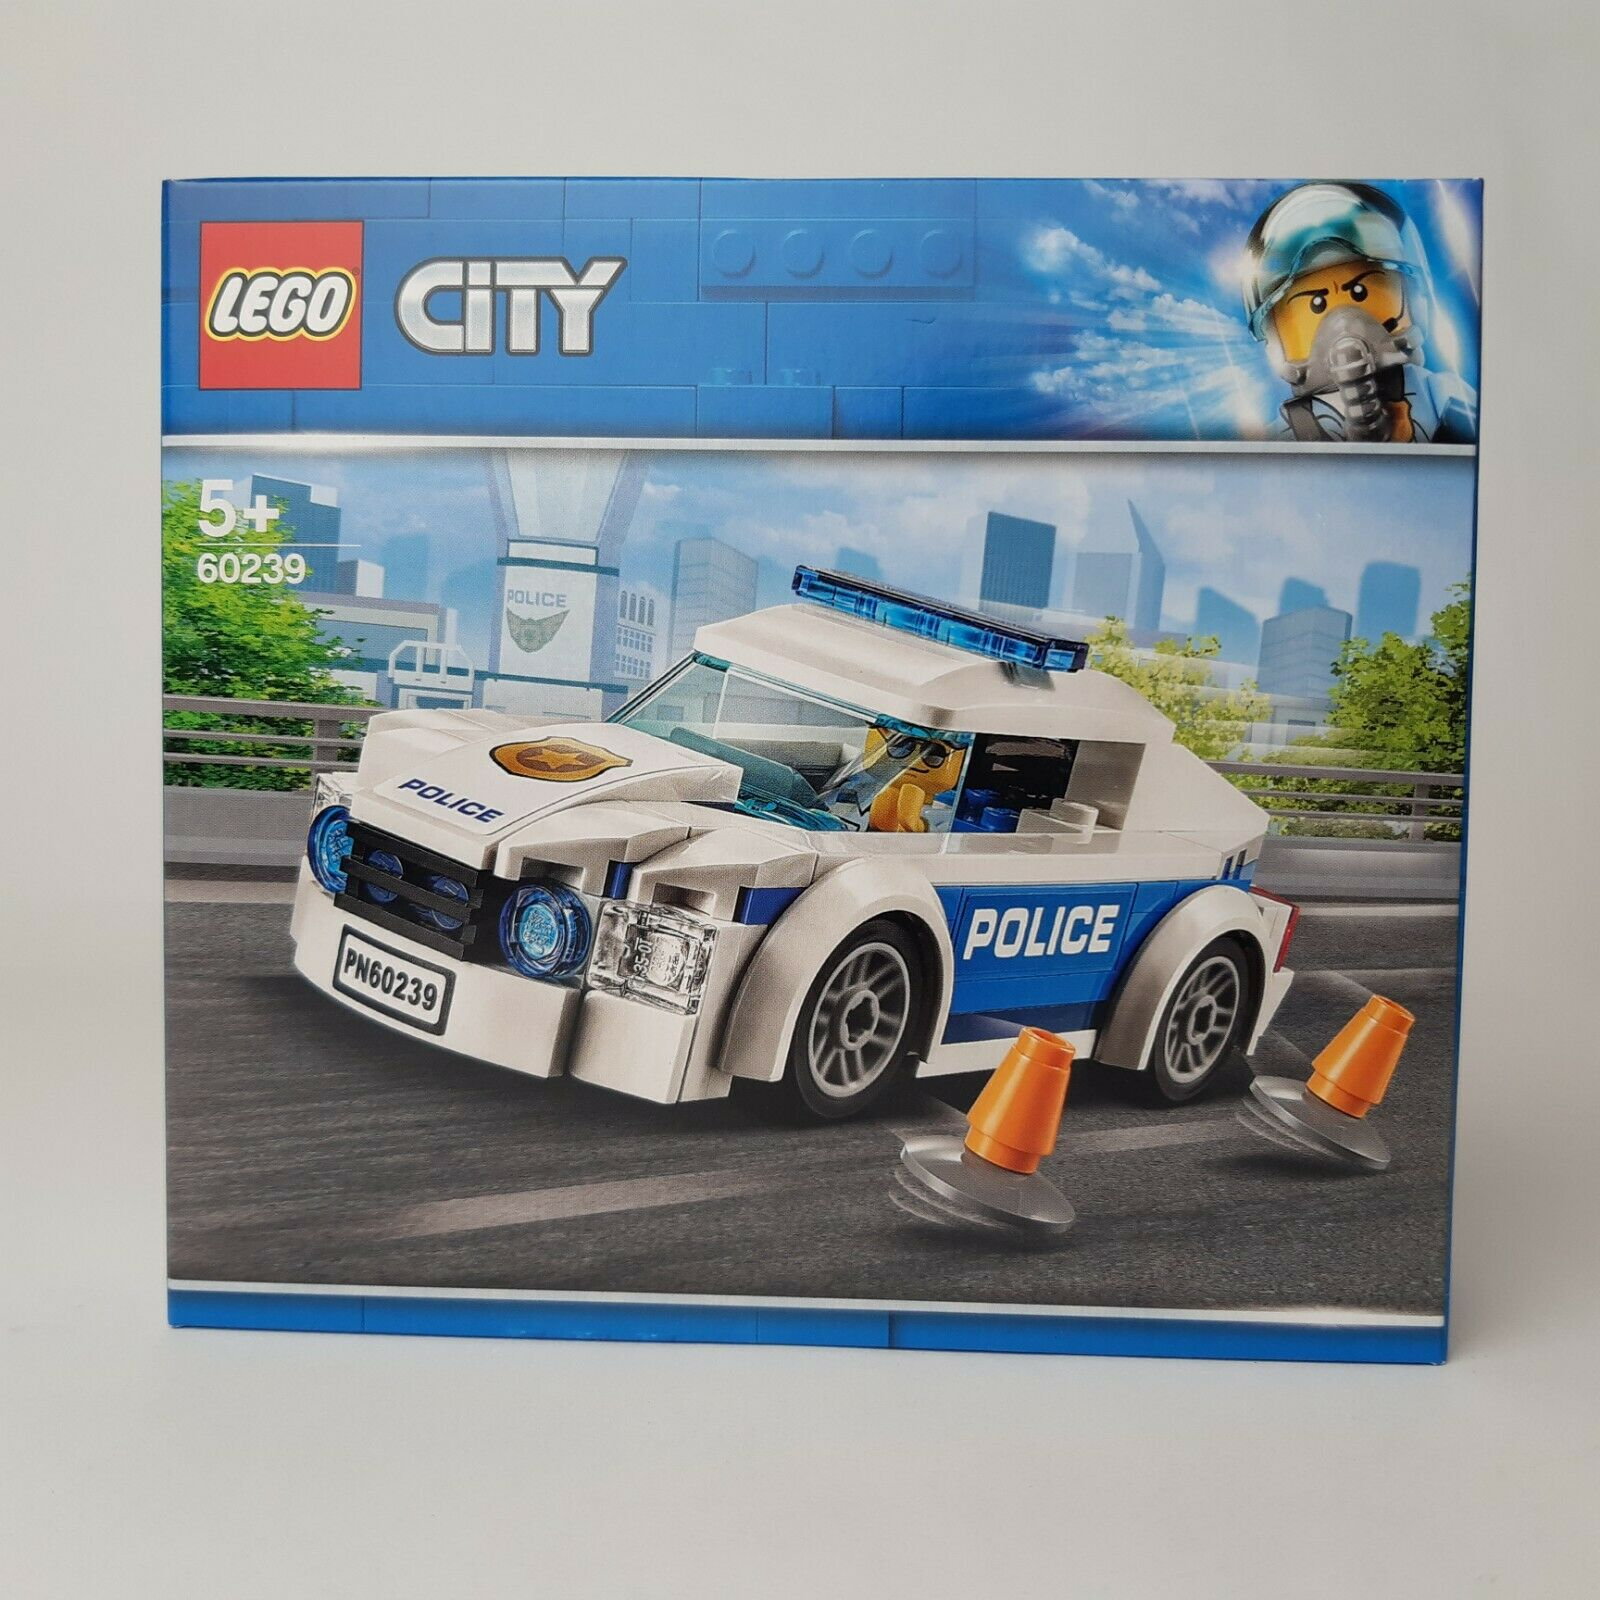 Lego City Police Patrol Car Set 60239 For Sale Online Ebay